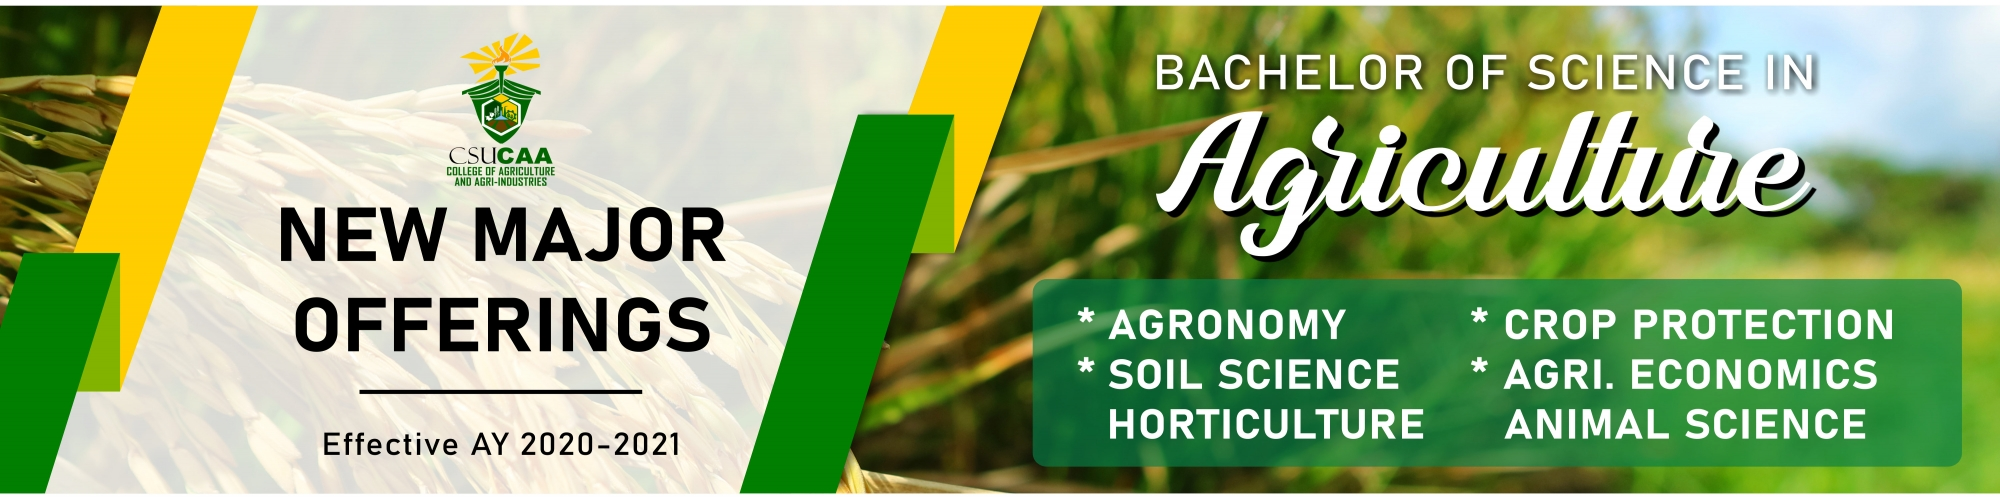 BSA College of Agriculture and Agri-Industries New Major Offerings